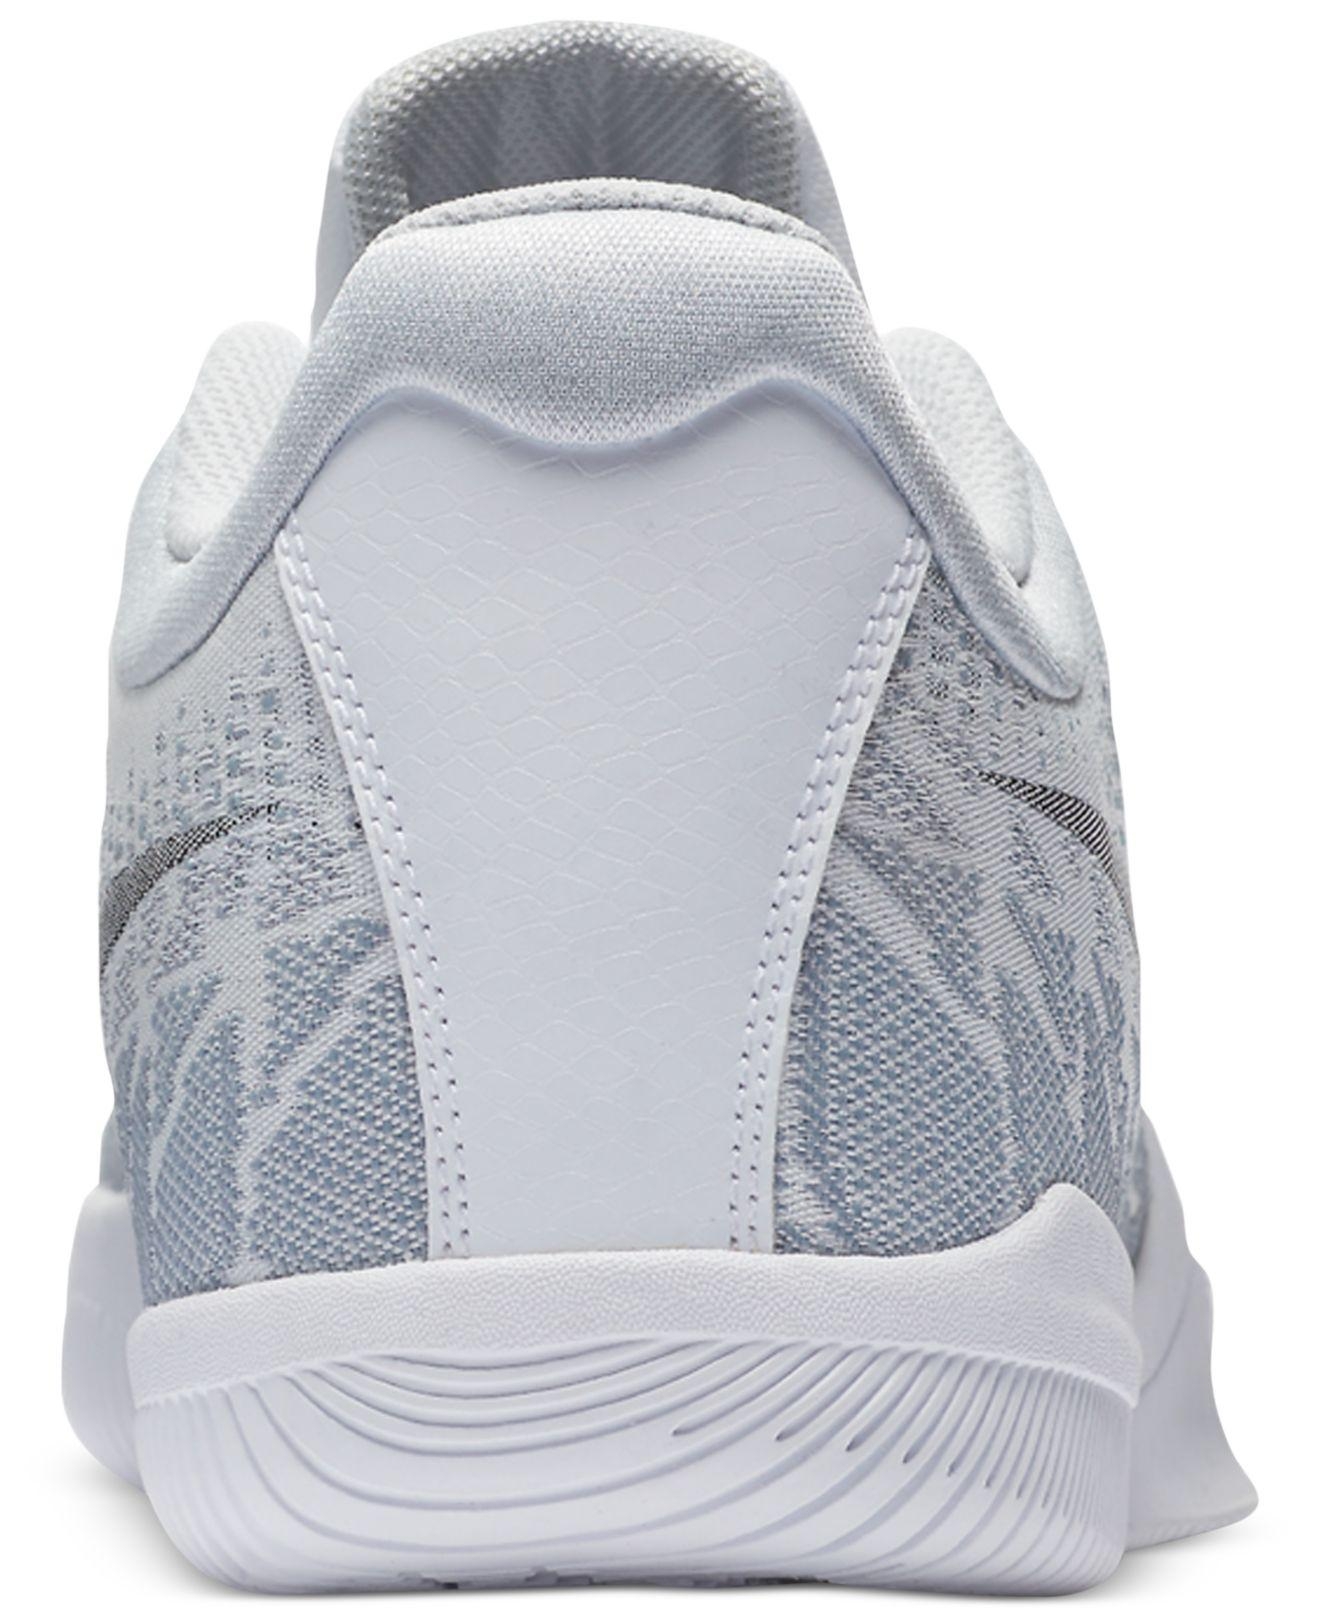 d5876314489a Nike Kobe Mamba Rage Basketball Sneakers From Finish Line in Gray ...